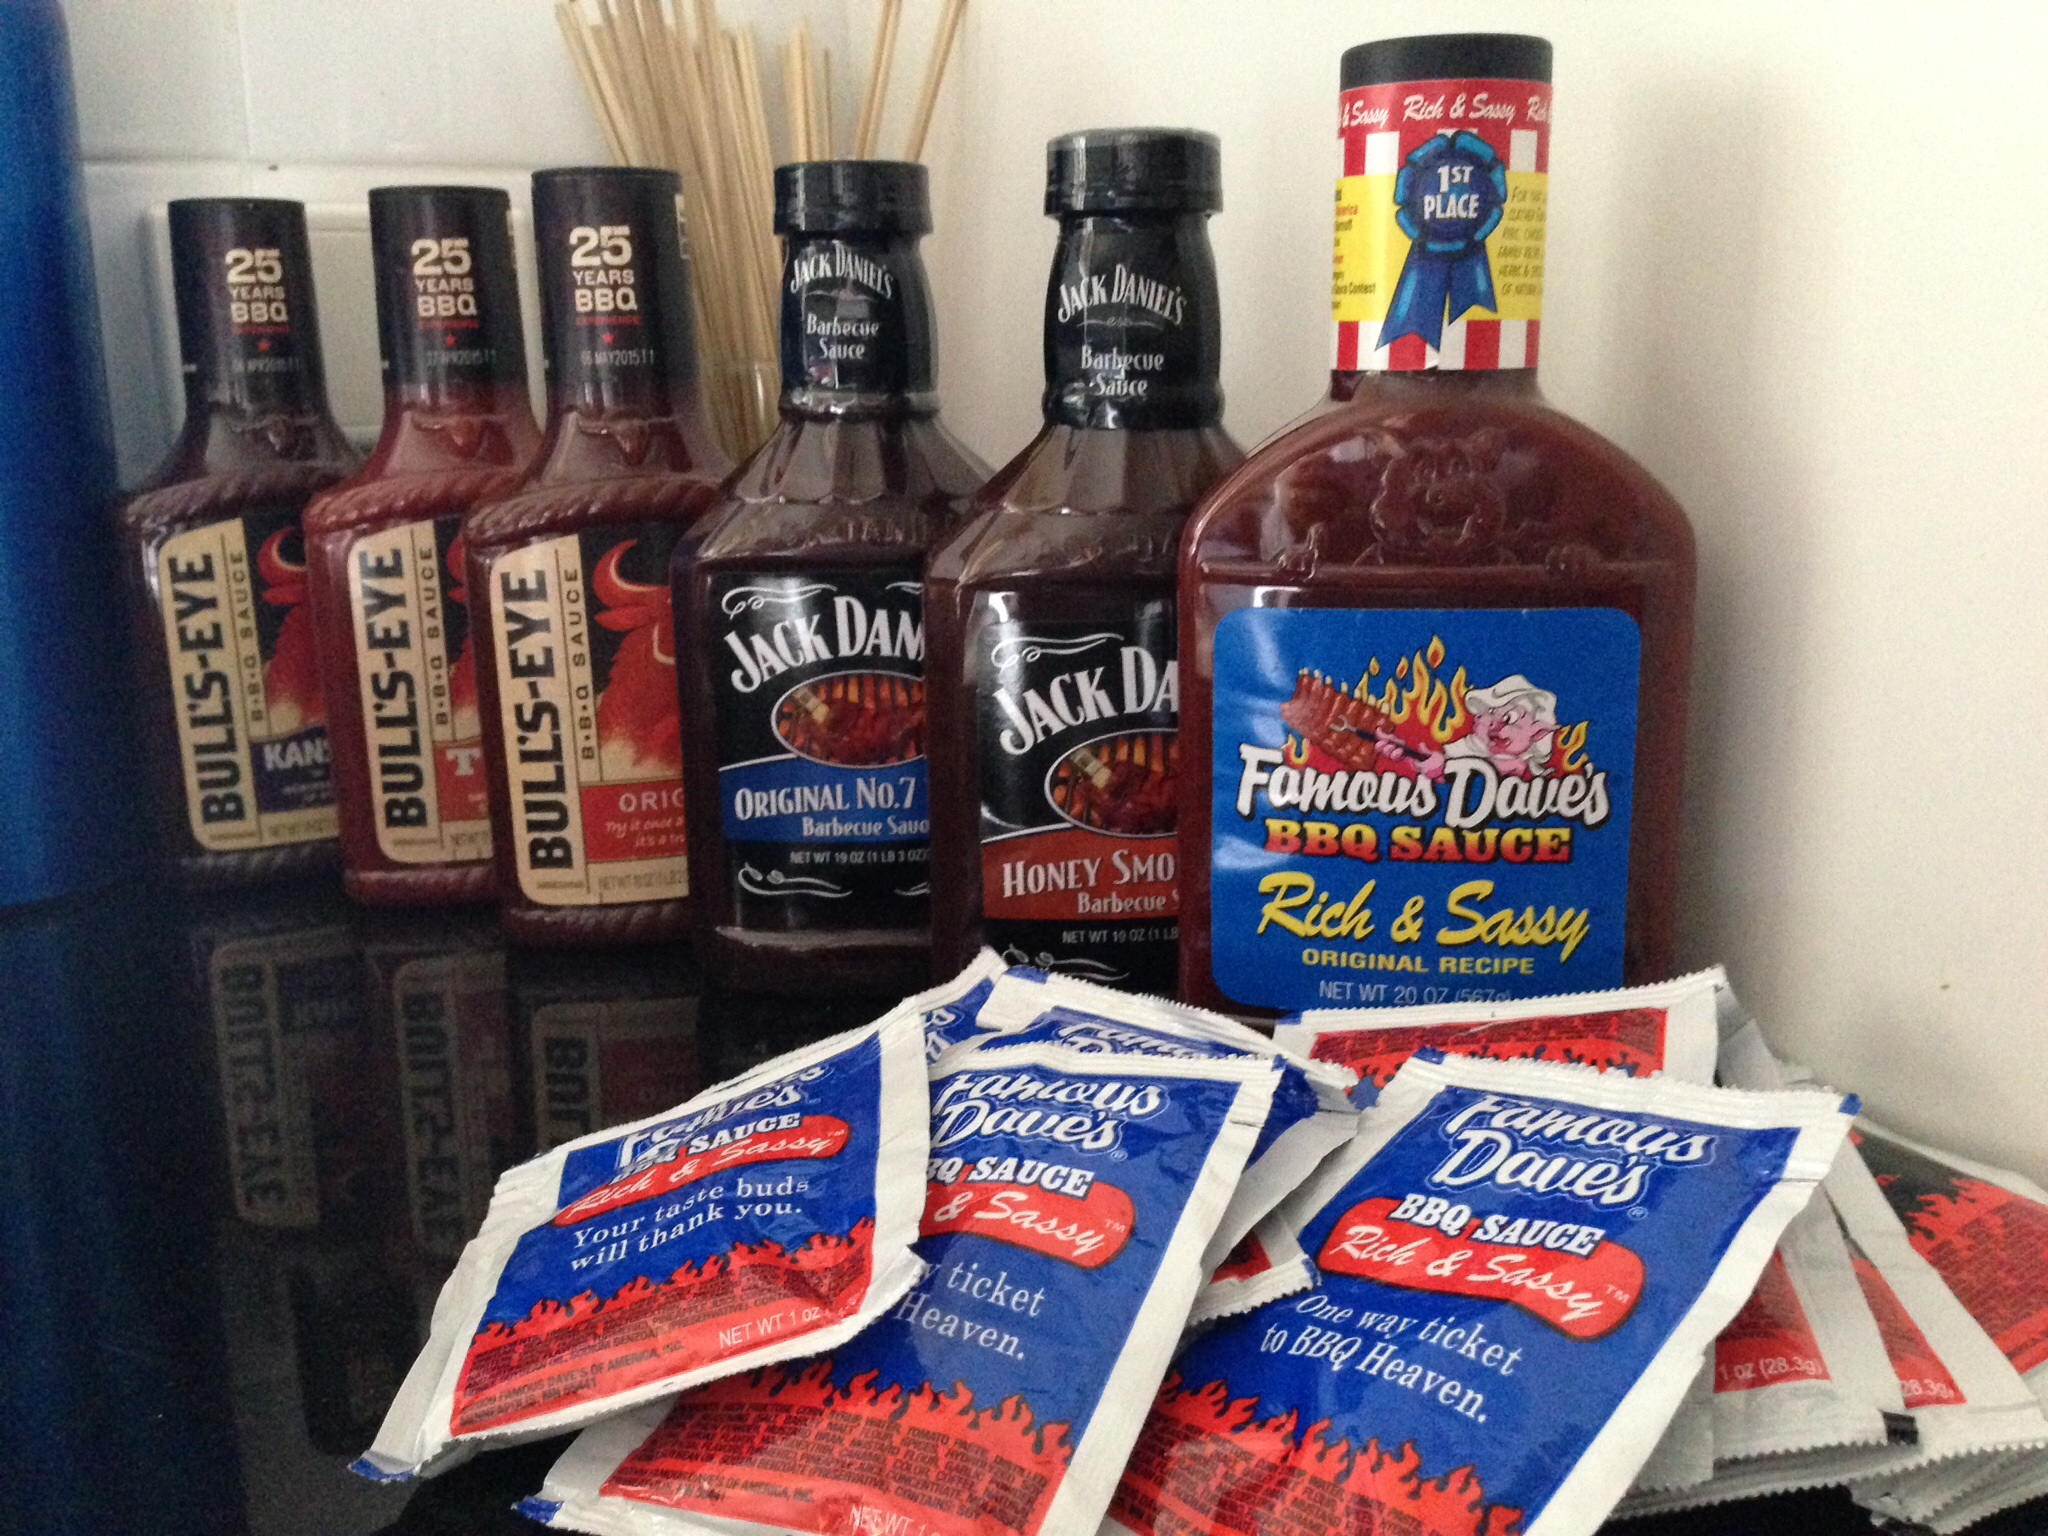 famous daves sauces